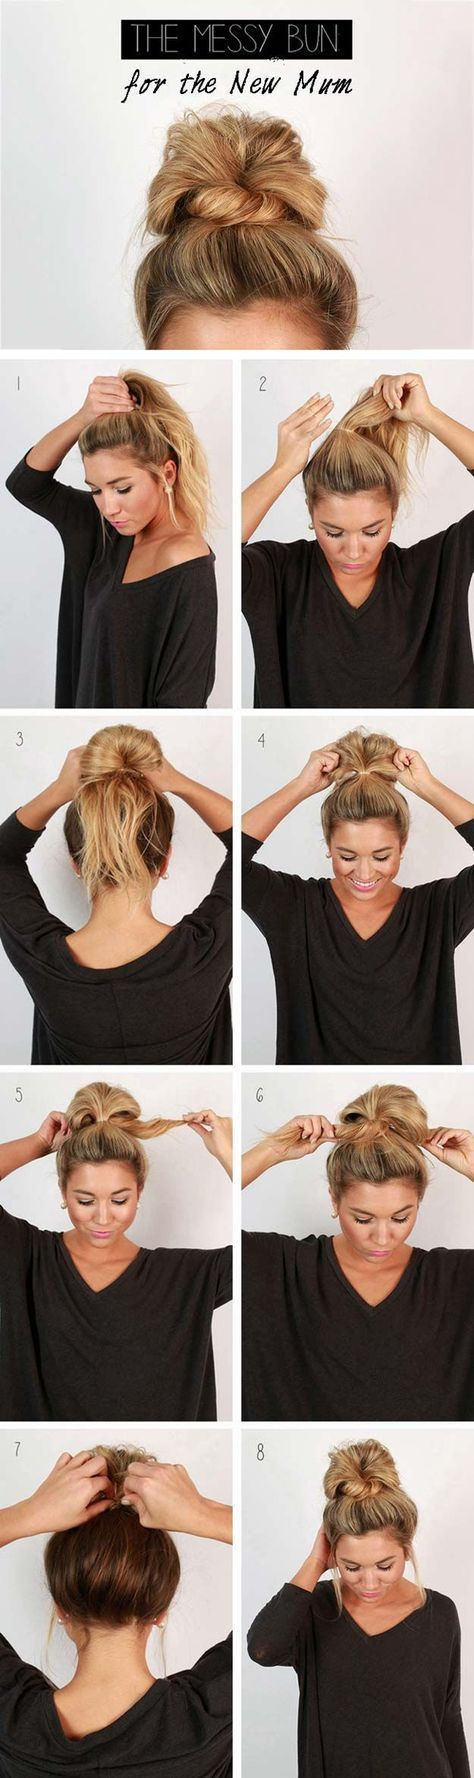 6+ Hot Wedding Hairstyles Ideas #braidedtopknots Wedding Hairstyles Medium Hair Cool and Easy DIY Hairstyles - Messy Bun - Quick and Easy Ideas for Back to School Styles for Medium, Short and Long Hair - Fun Tips and Best Step by Step Tutorials for Teens, Prom, Weddings, Special Occasions and Work. Up dos, Braids, Top Knots and Buns, - Love finding new ways to style your hair? How about cool easy hairstyles that are quick and pretty much fool proof? We've all seen the super cool hair tutorials #topknotbunhowto